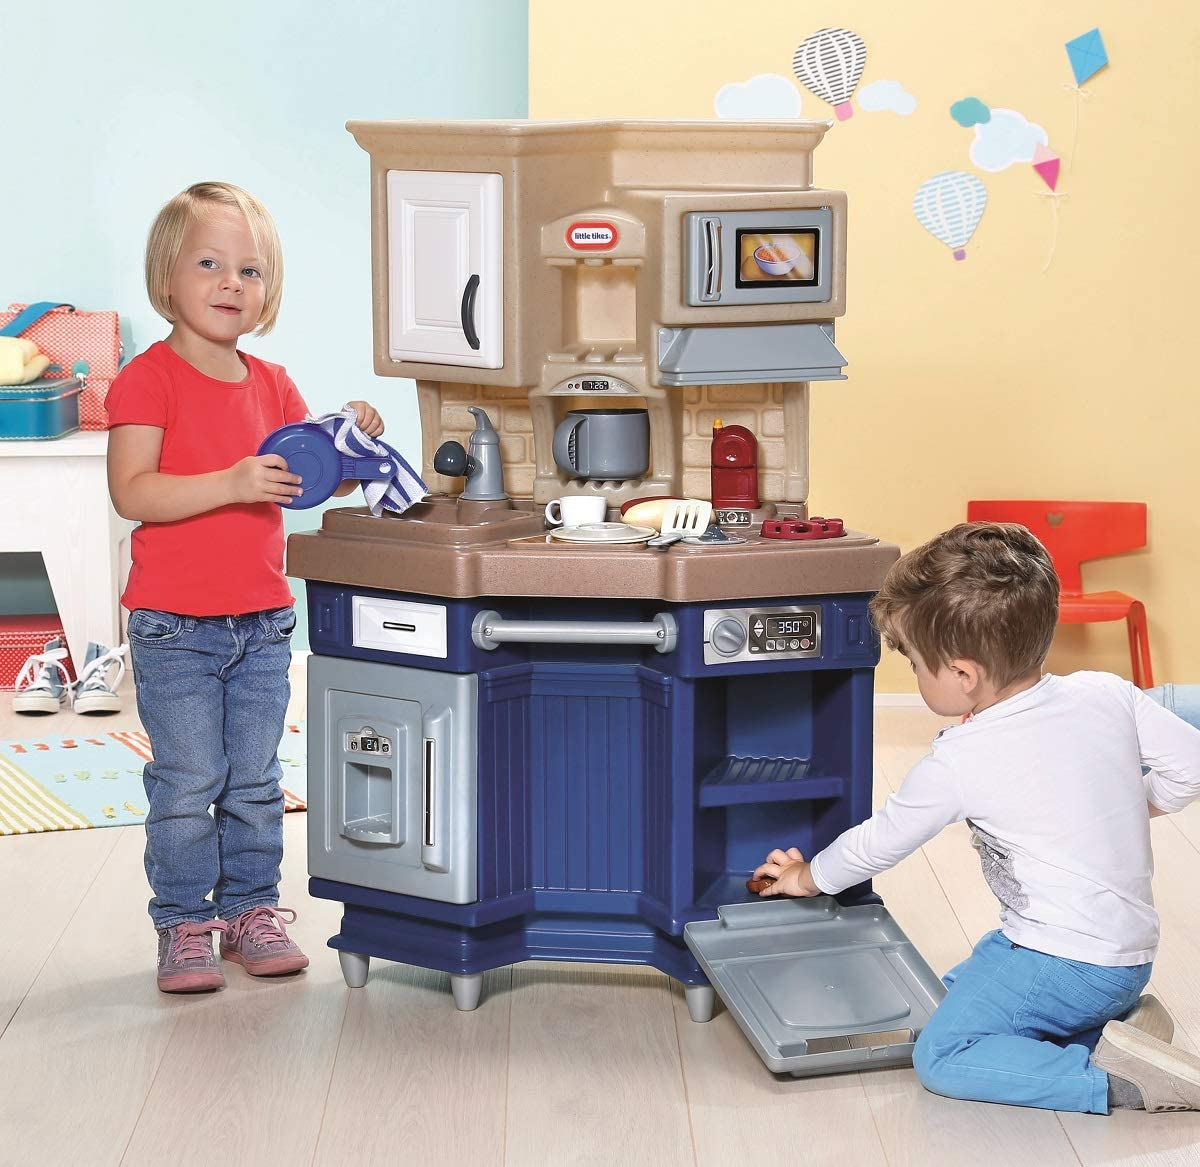 Top 10 Best Kitchen Set For Toddlers in 2020 10